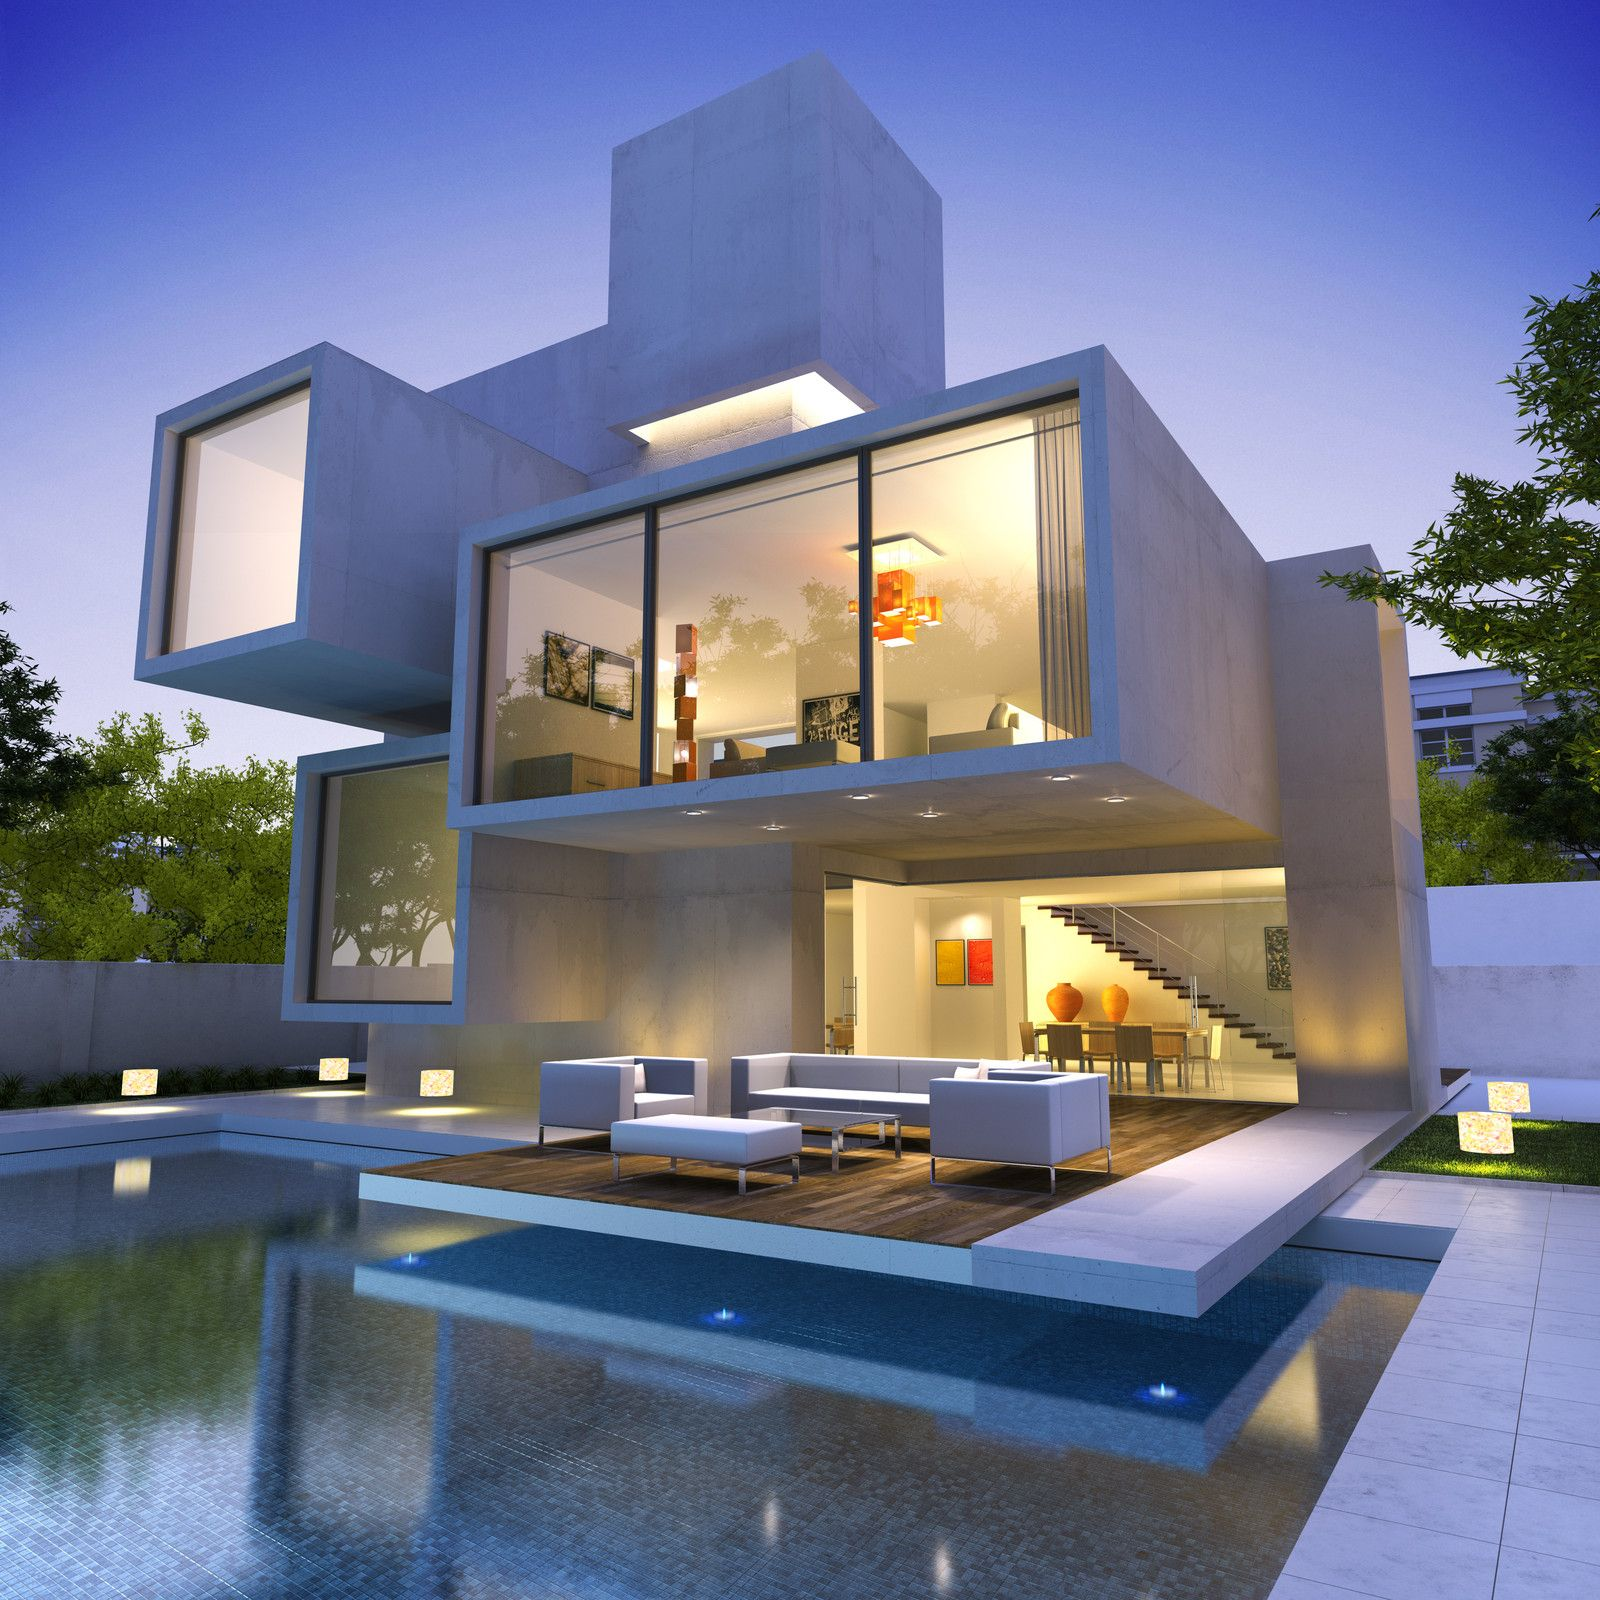 Really nice modern houses - Contemporary Modular Homes Like This Really Please The Eye Look At The Concrete Exterior And